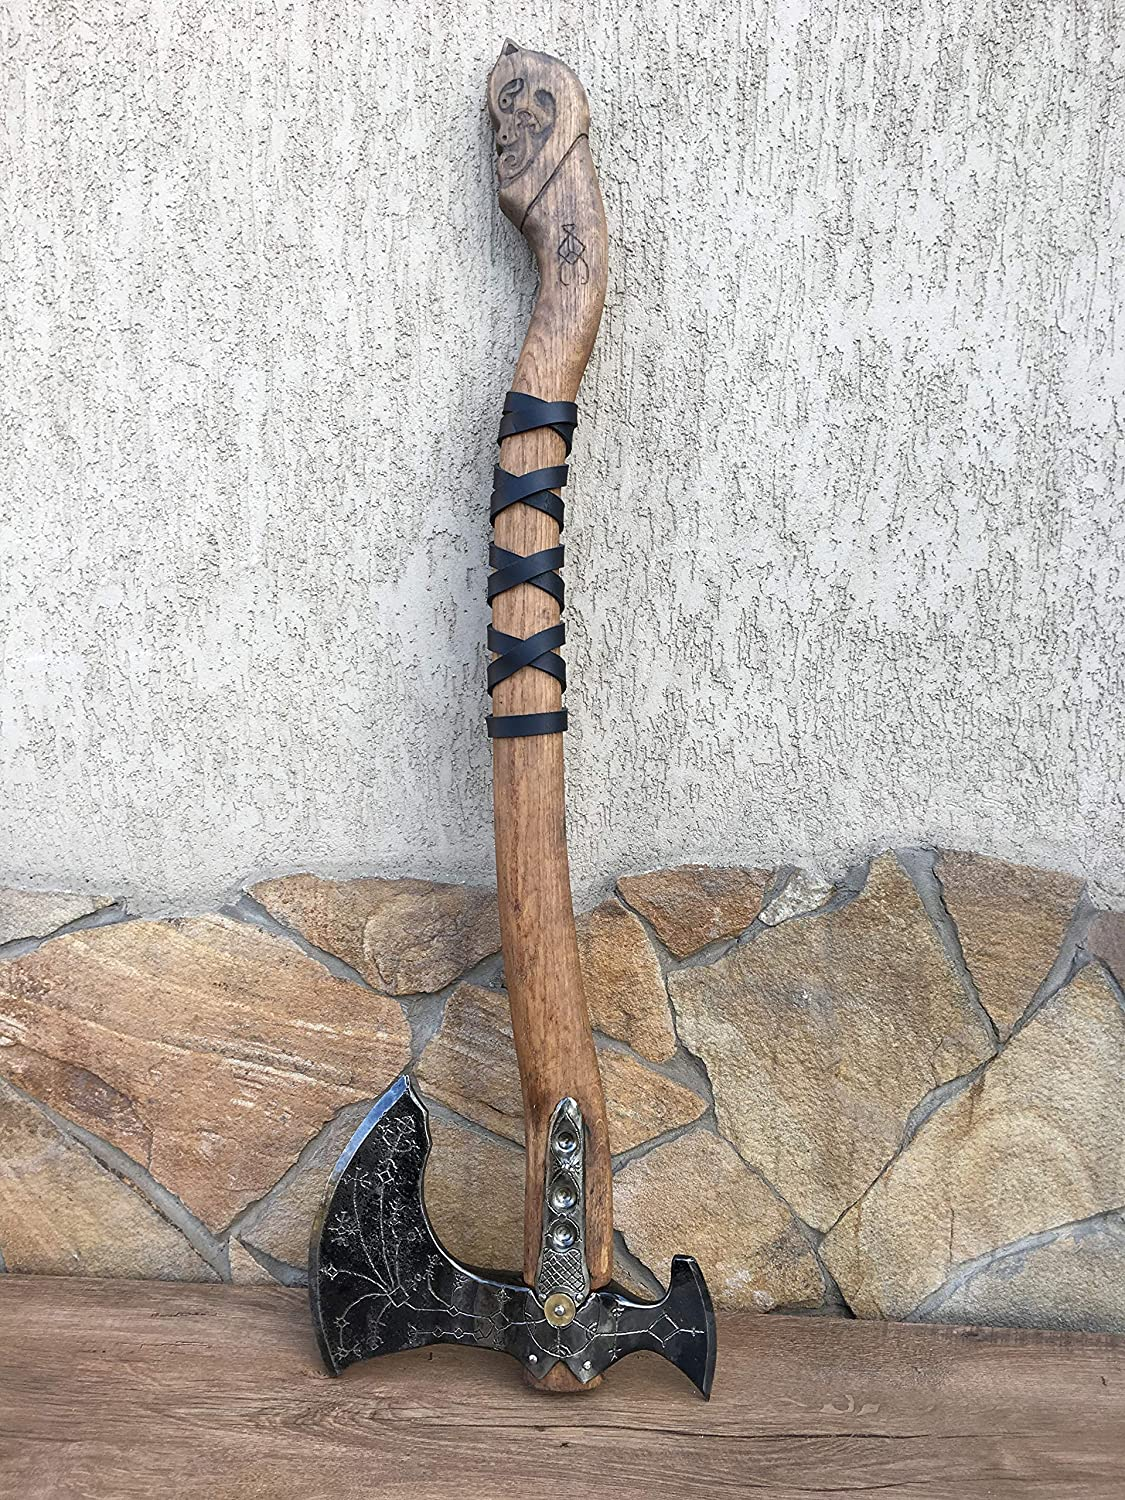 prop cosplay axe viking axe replica God of War costume weapon Leviathan axe cosplay weapon Kratos axe cosplay armor Kratos weapon